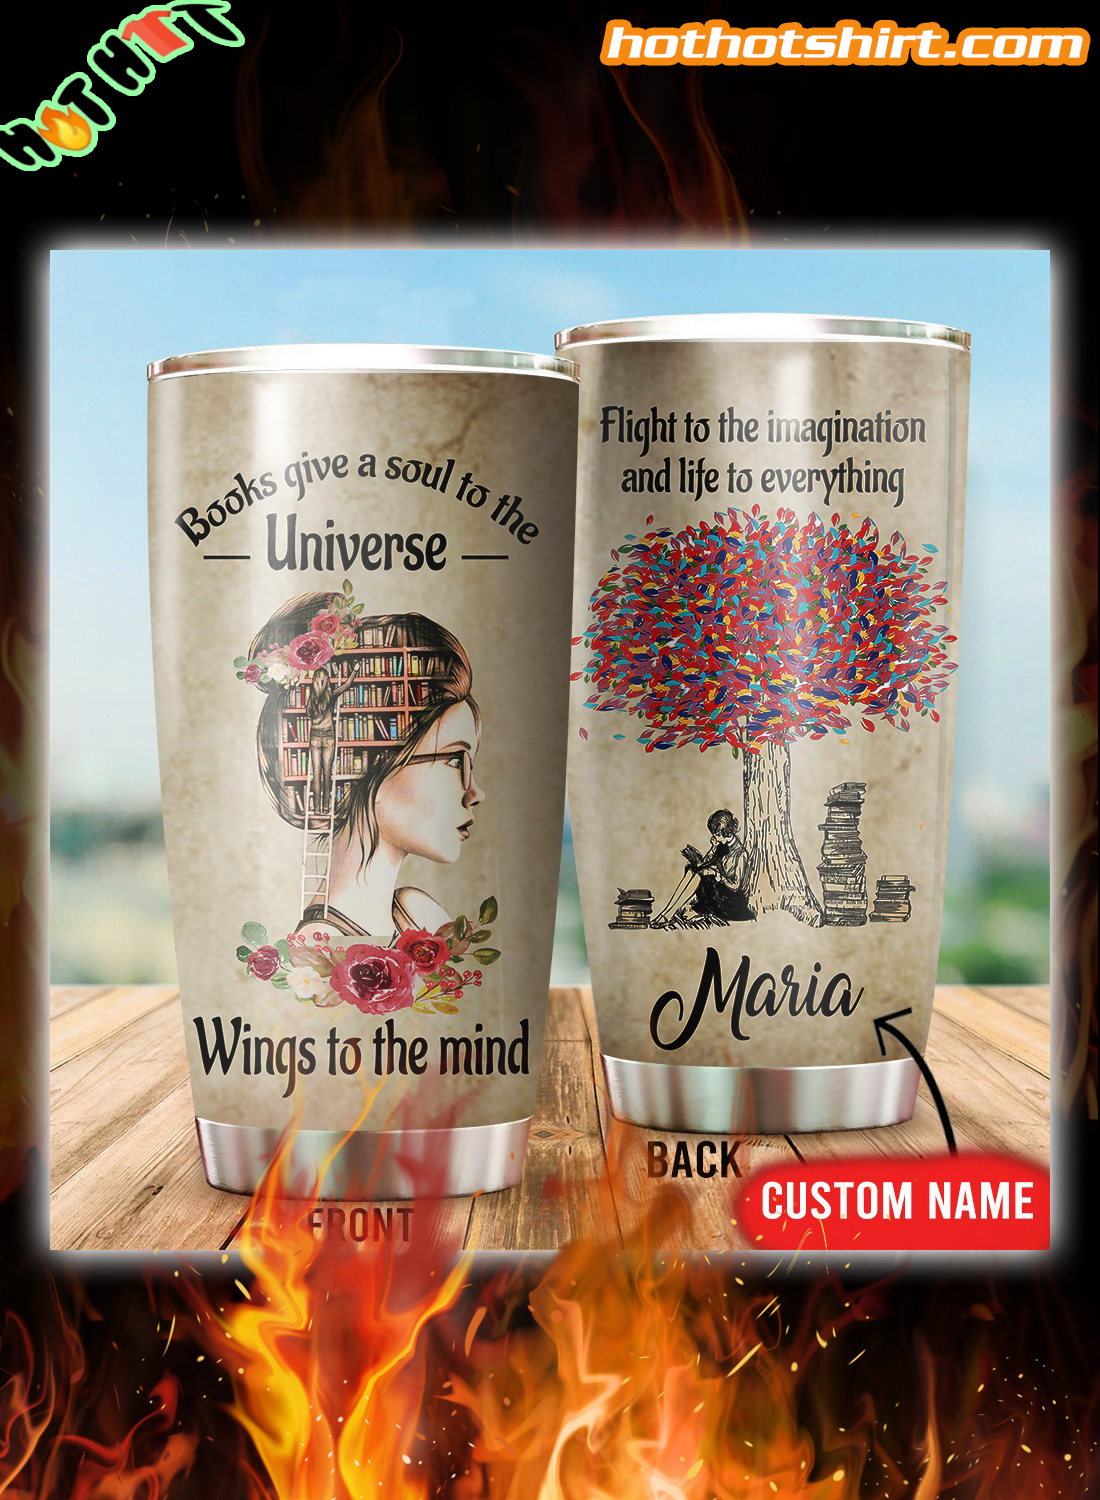 Personalized Books give a soul to the universe wings to the mind tumbler